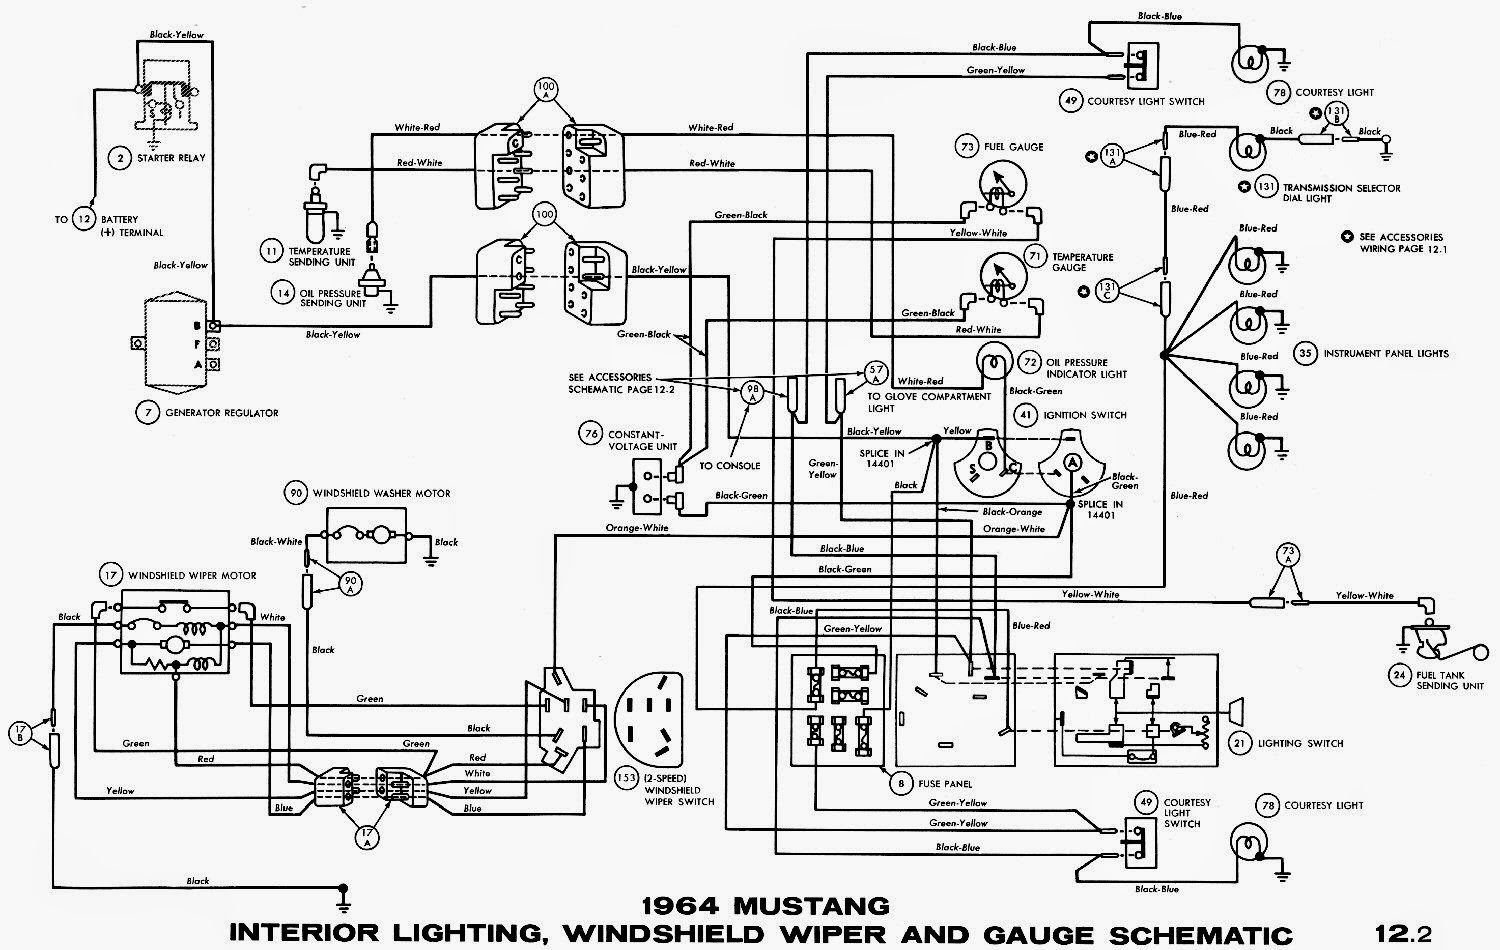 1964 mustang wiring diagrams schematic wiring diagrams